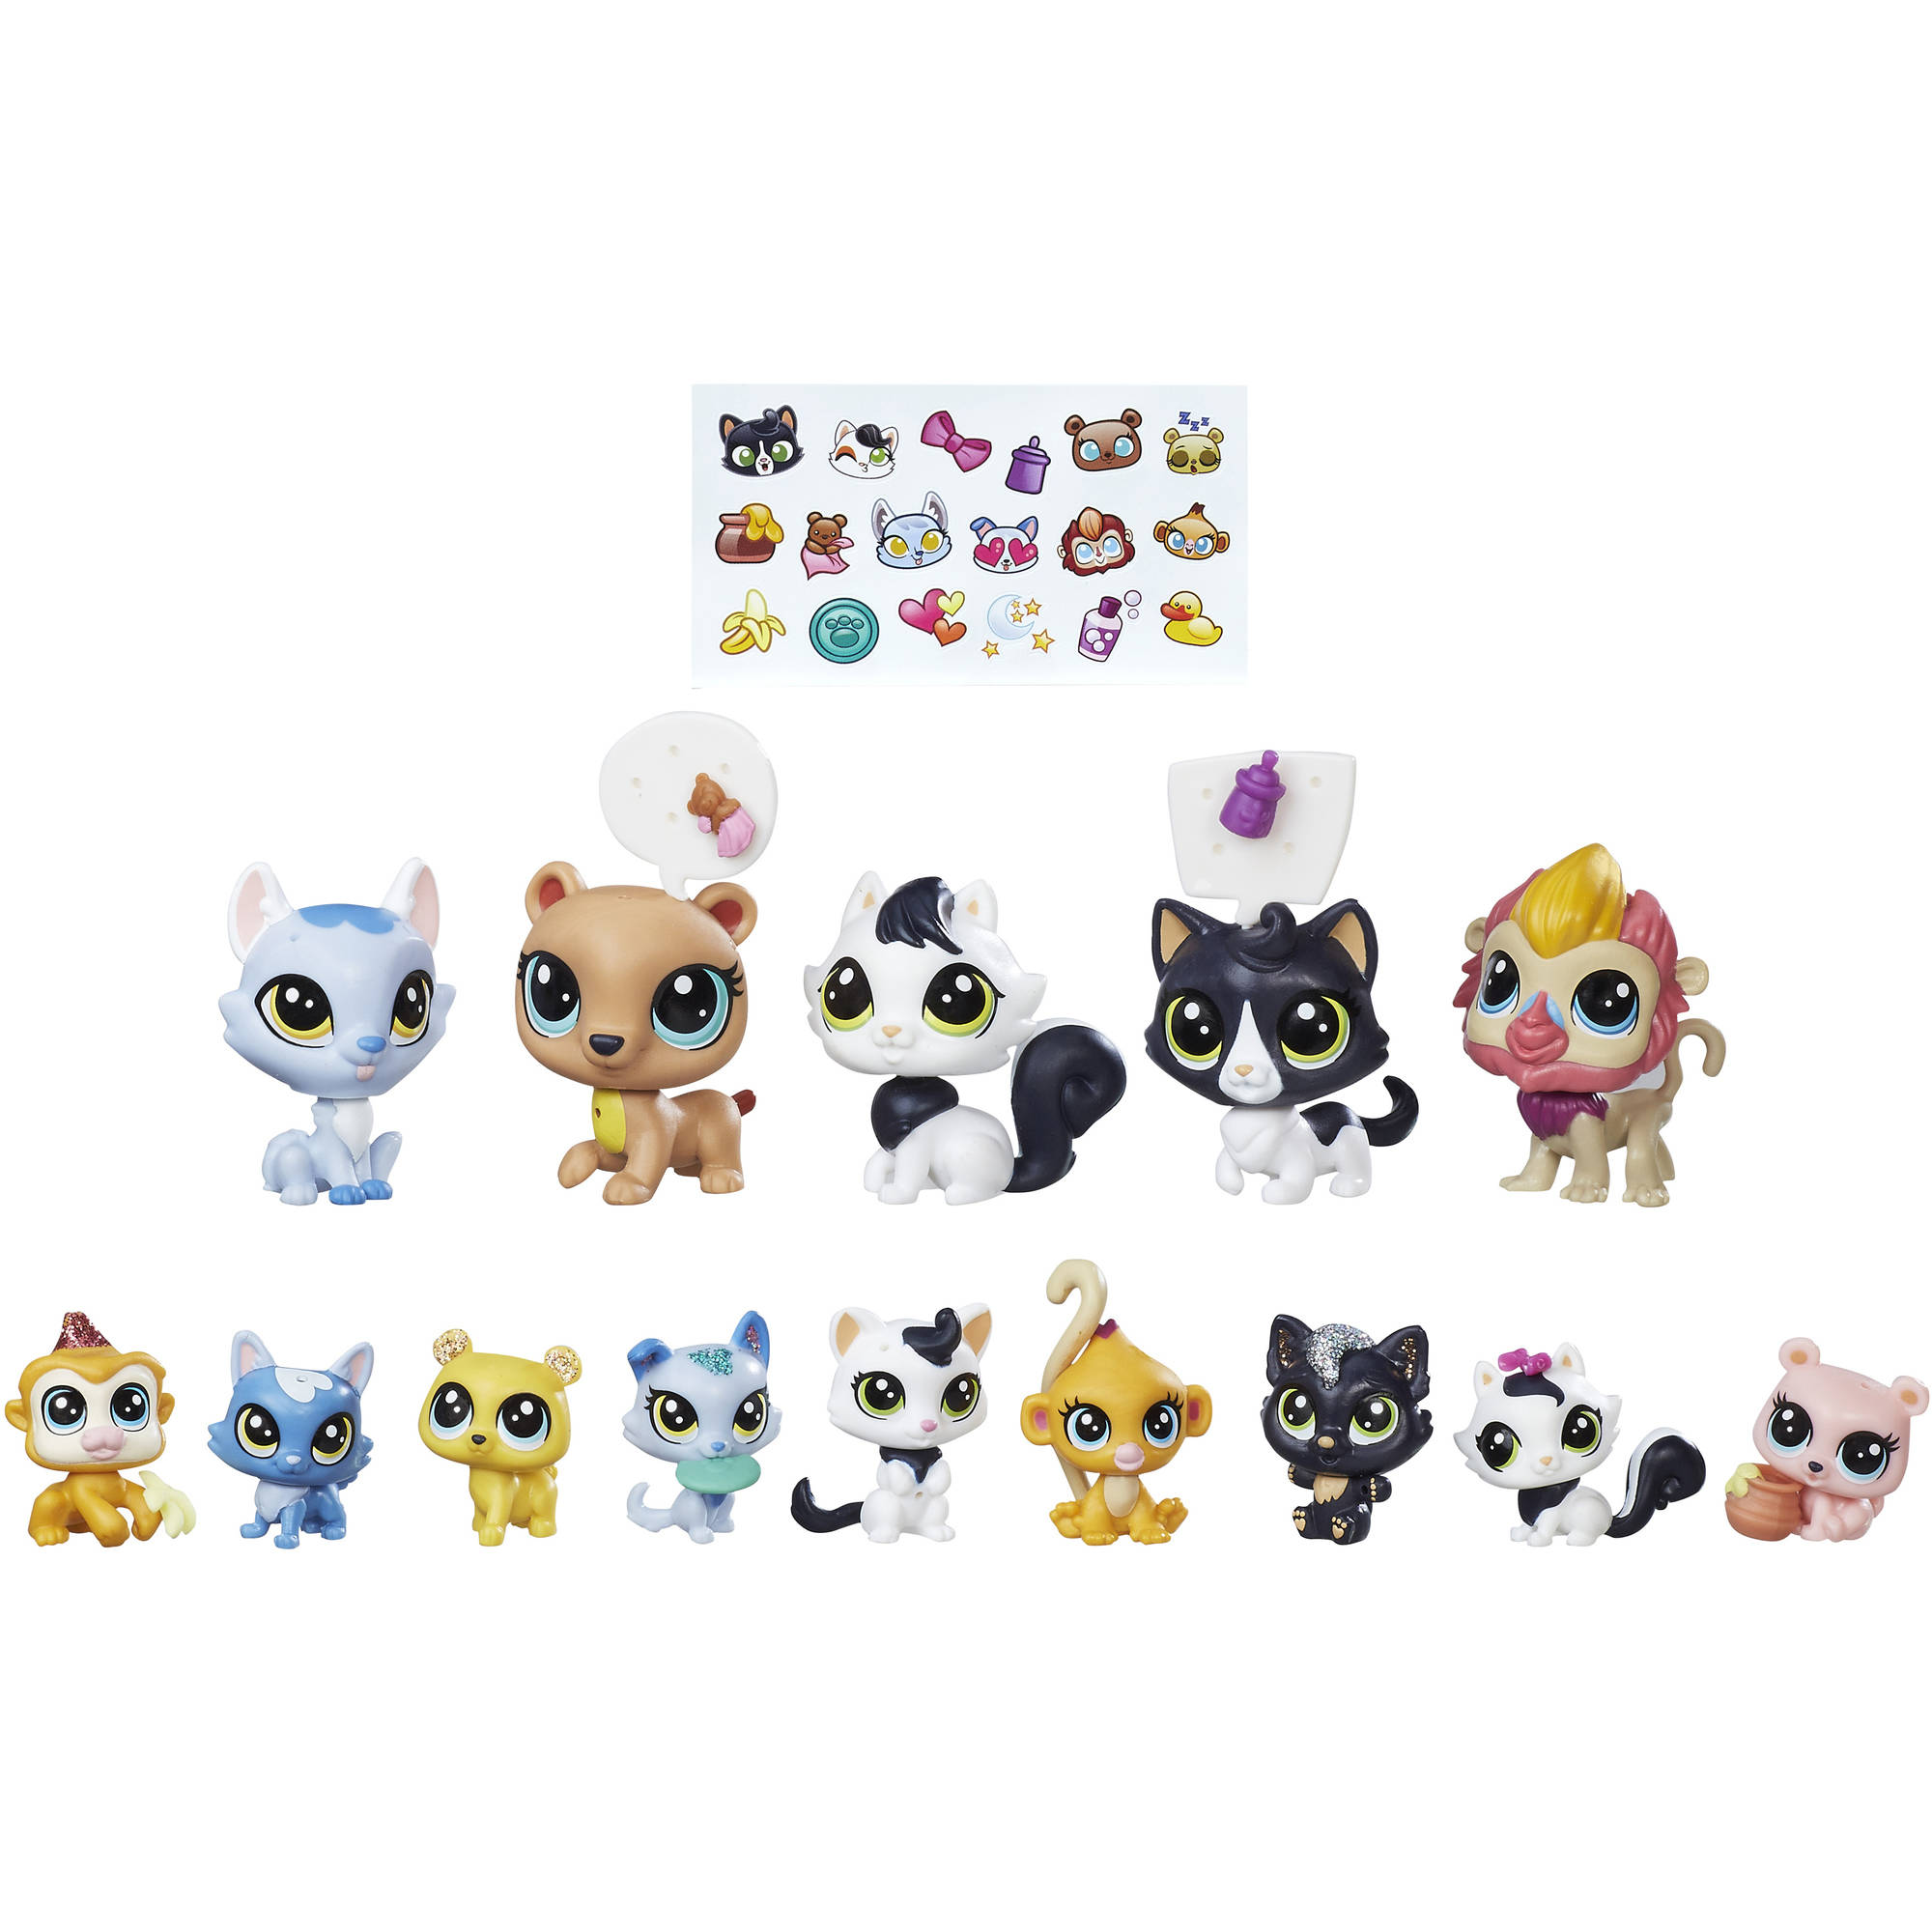 Littlest Pet Shop Family Pet Collection - Walmart.com